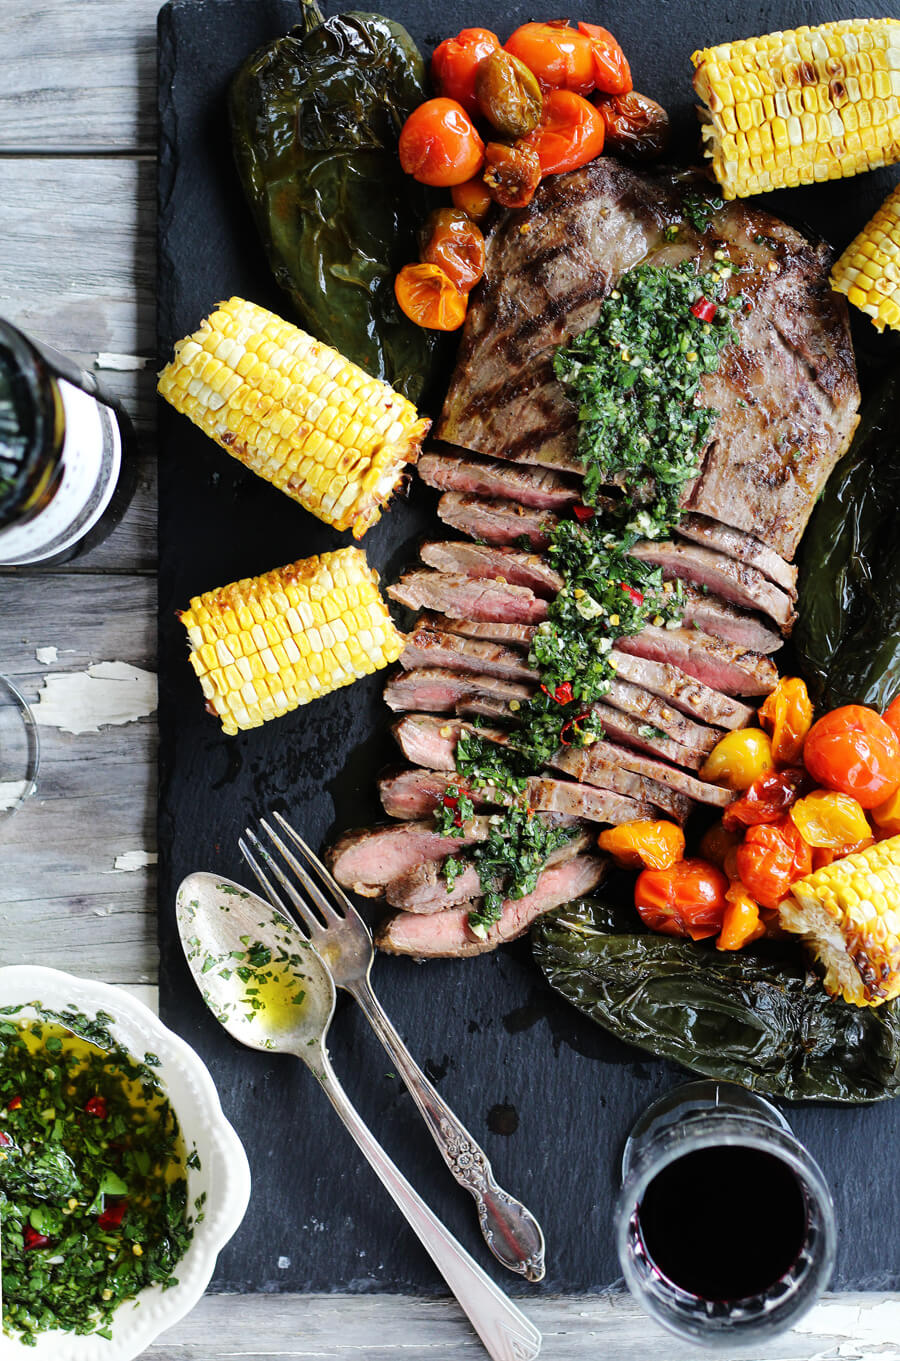 Marinated Flank Steak Asado, Chimichurri Sauce and Roasted Vegetables